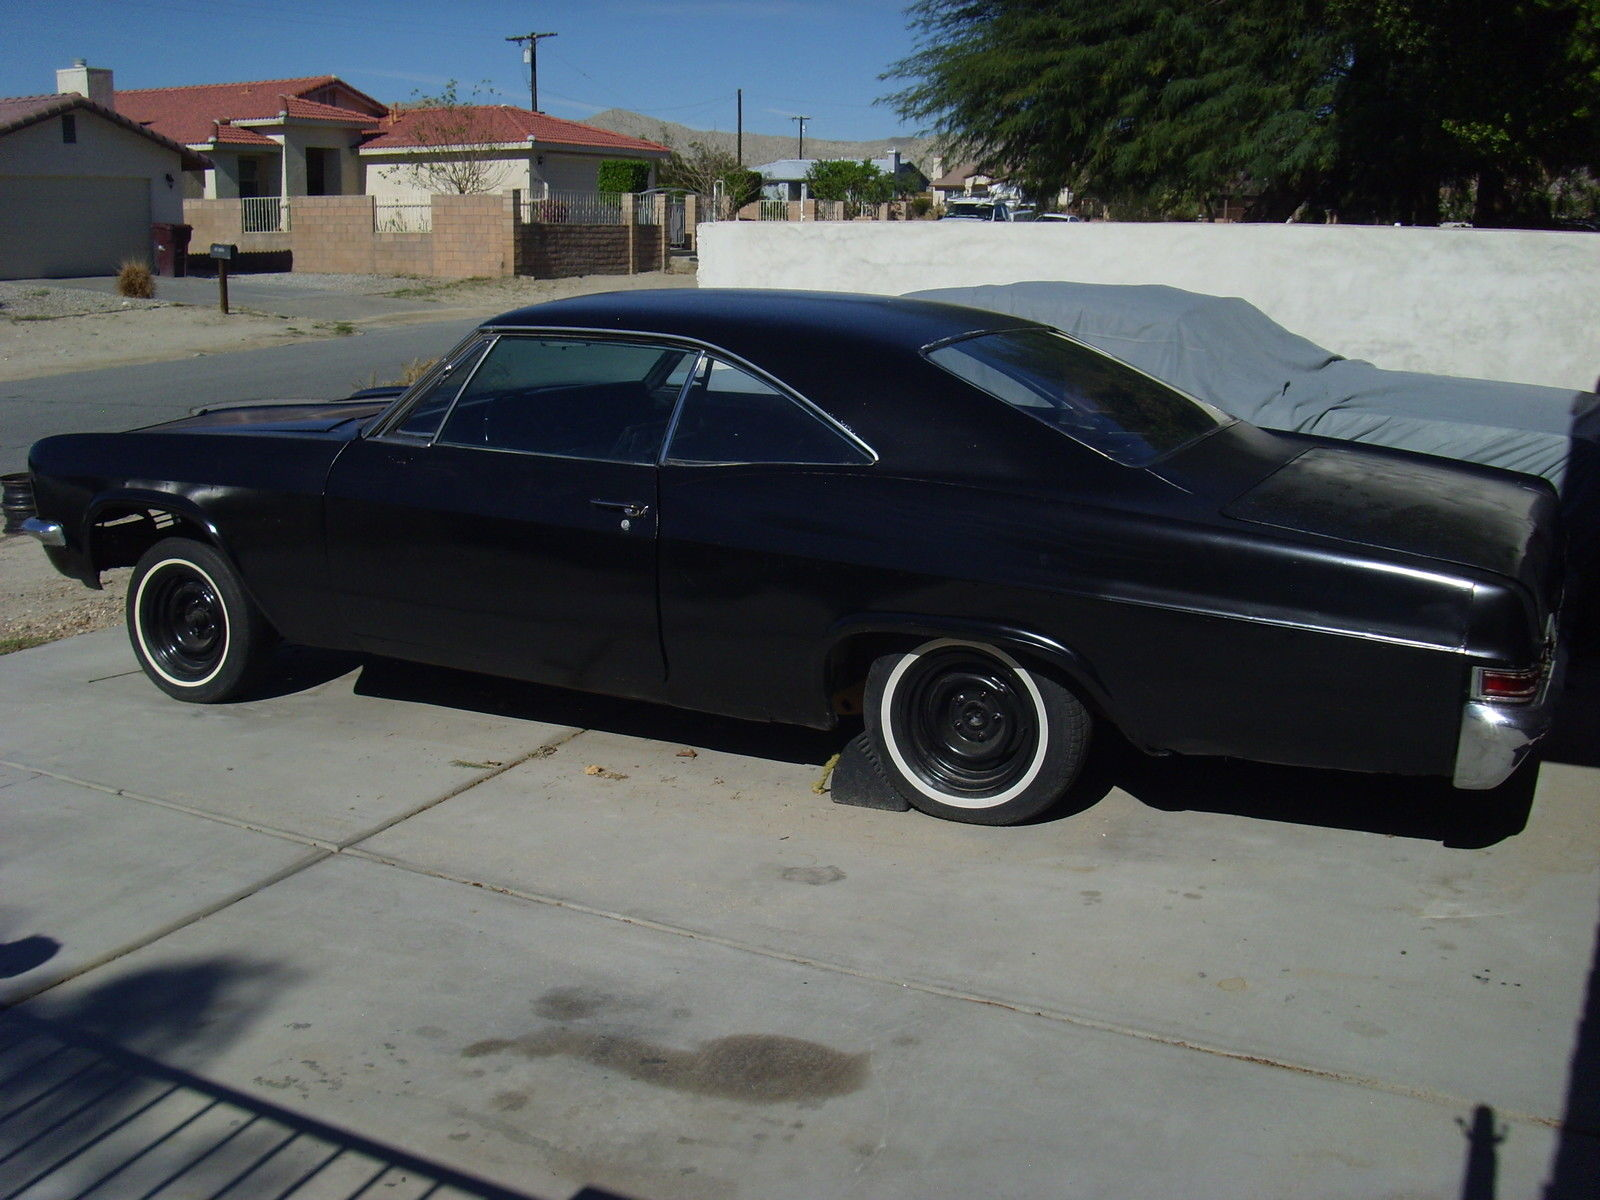 Classic 1966 Chevrolet Impala Ss Project Lowrider Hot Rod 656667 Chevy Convertible Technical Specifications Of